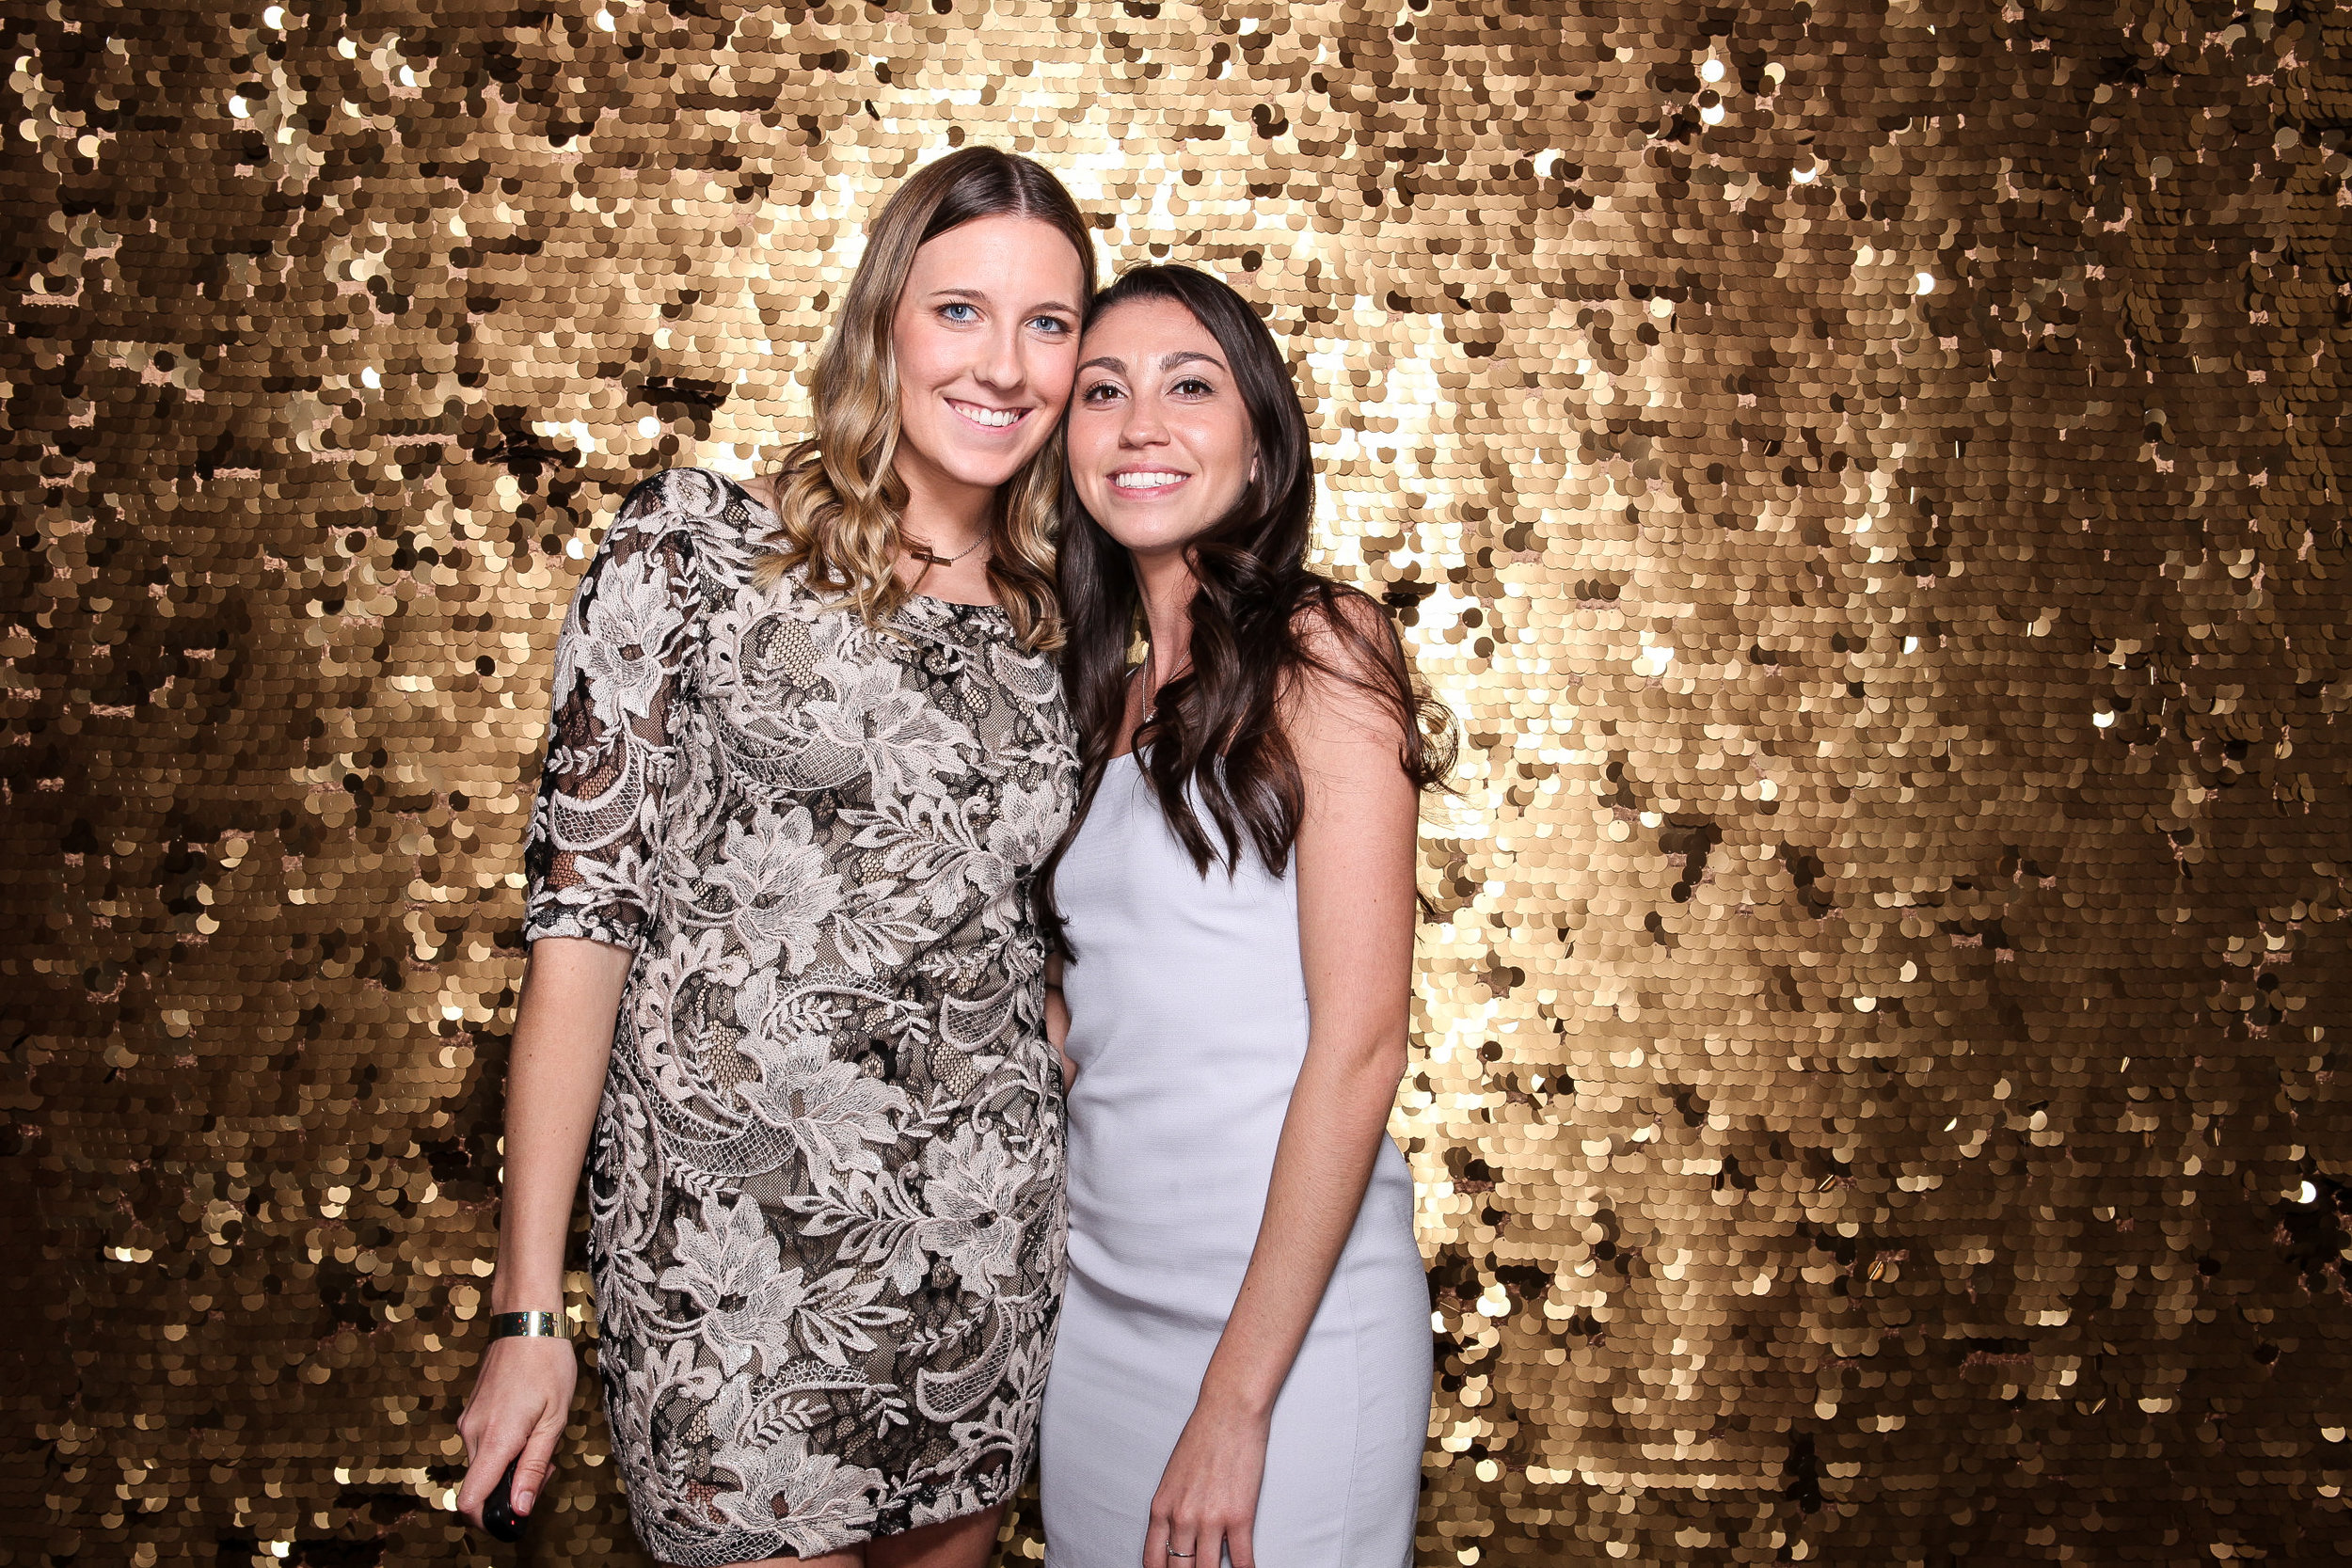 20190503_Adelphi_Senior_Formal-208.jpg